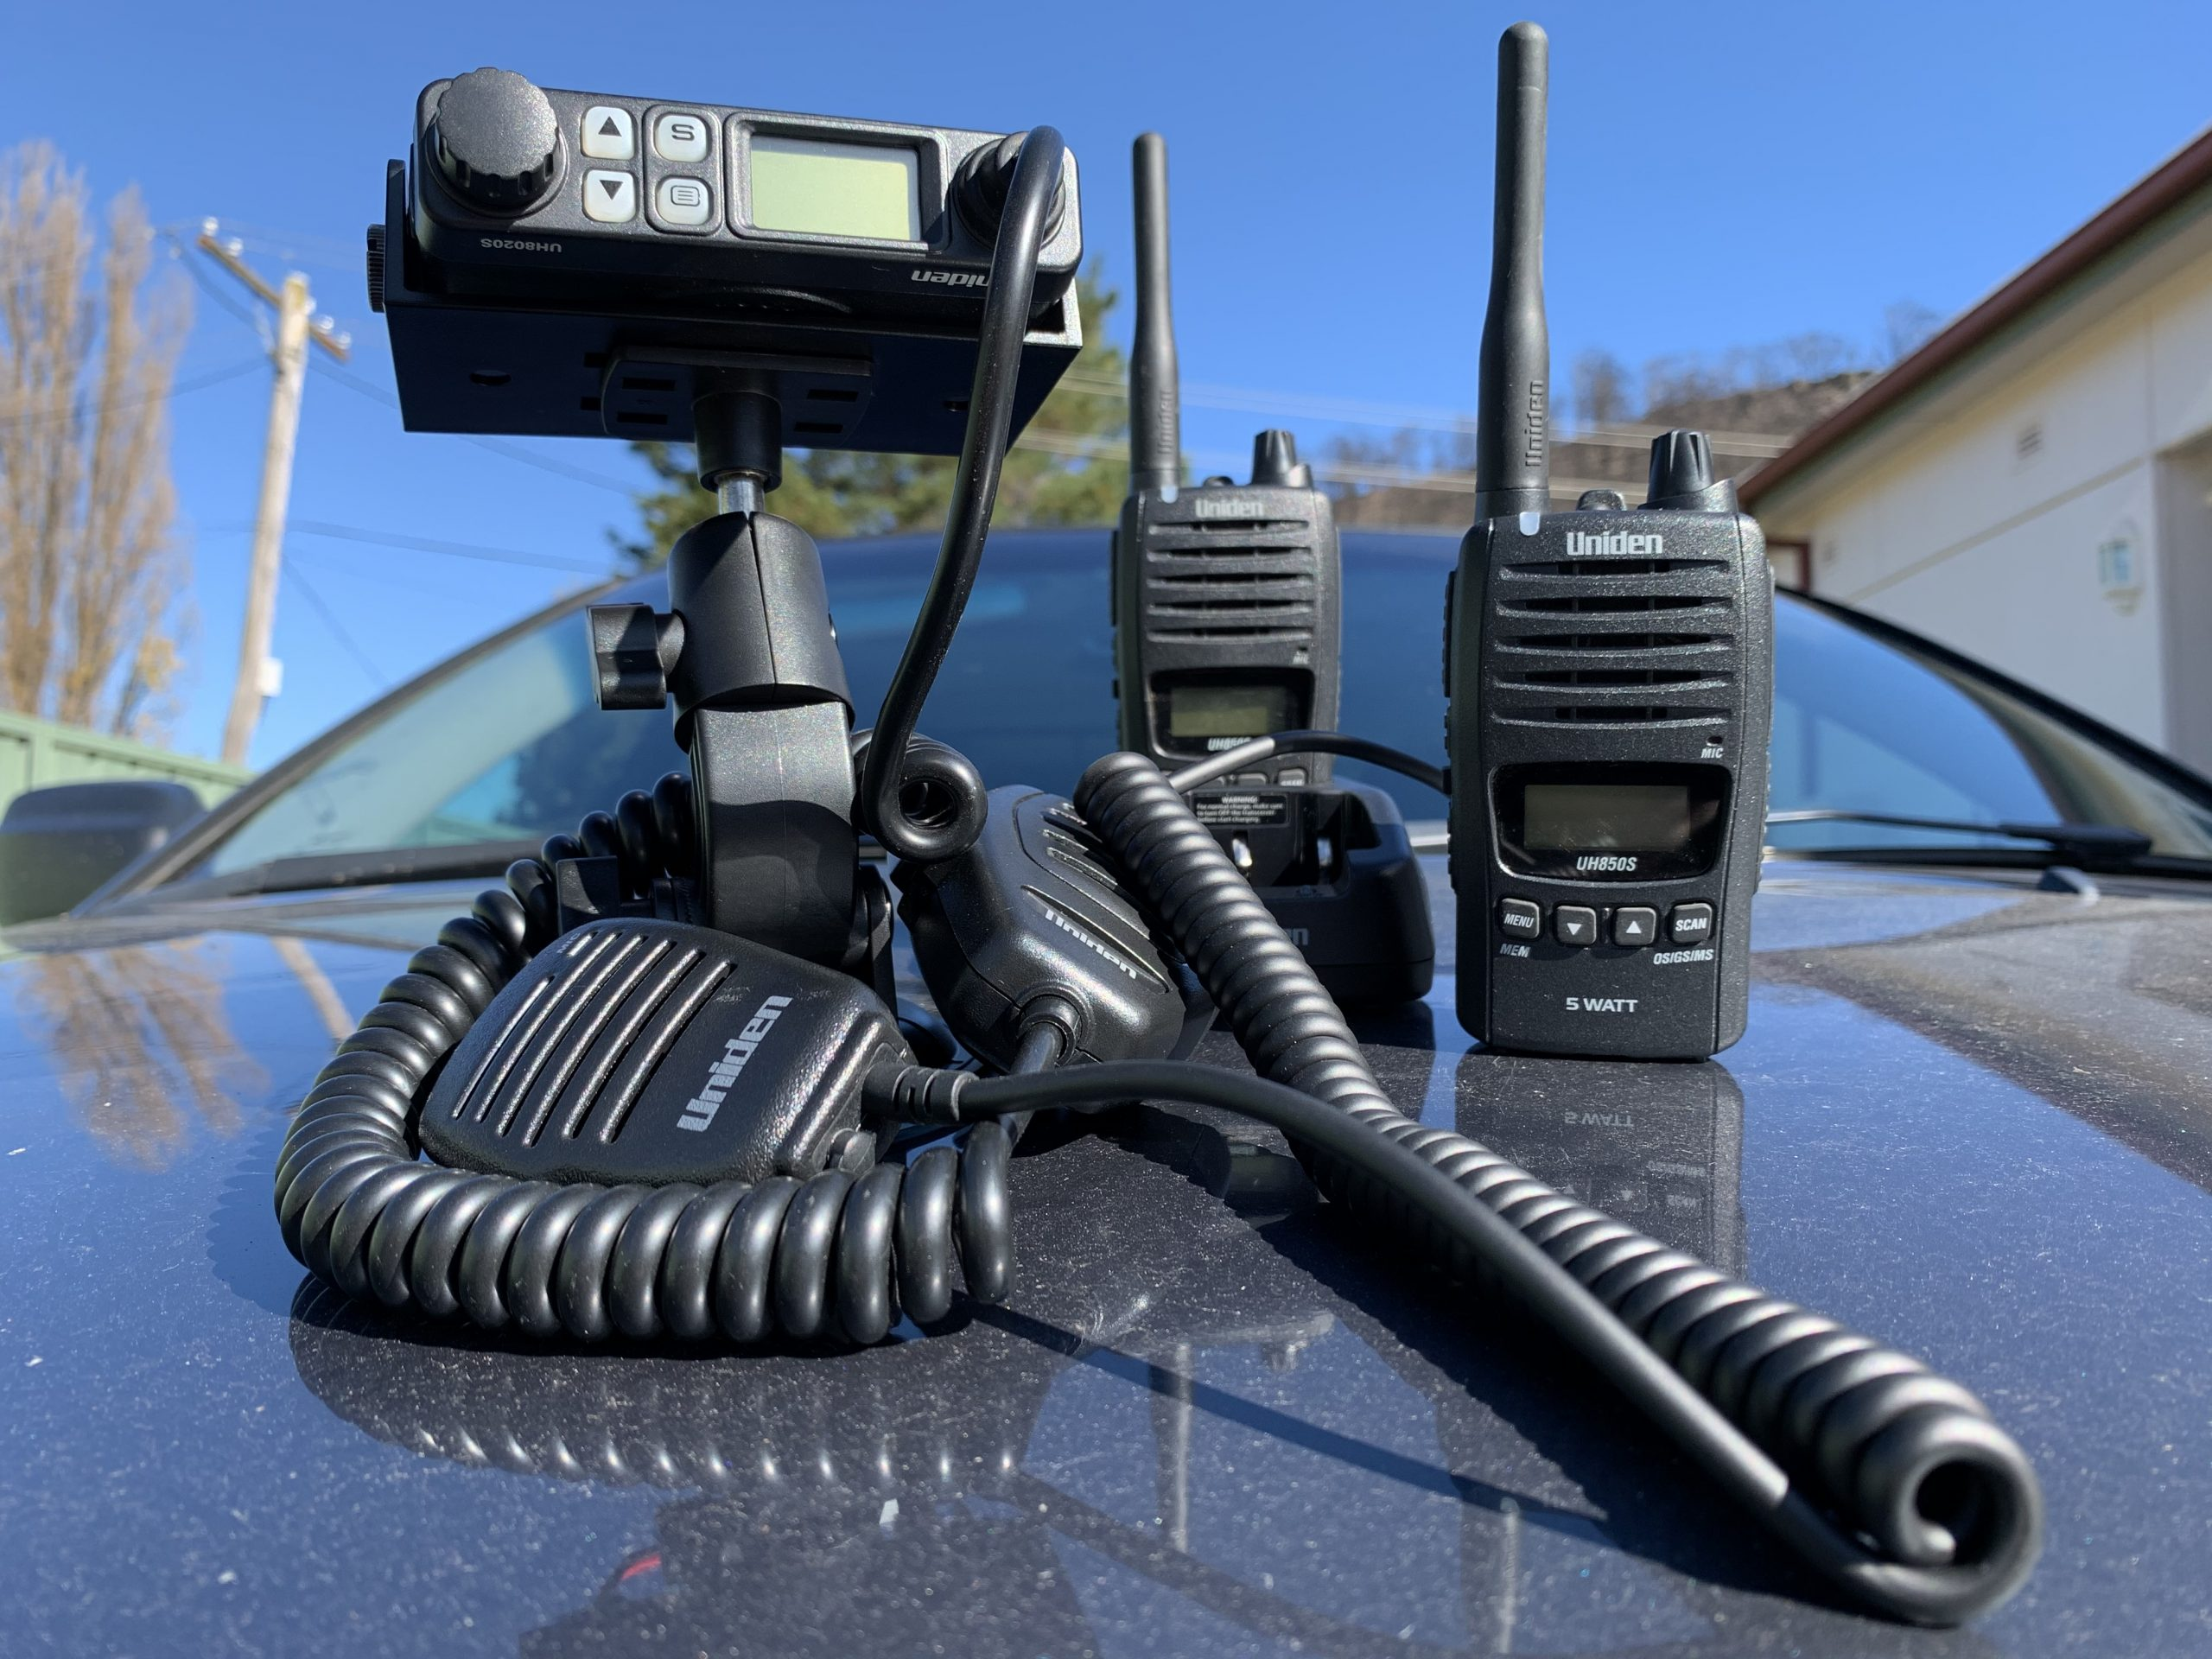 The ultimate guide to UHF radio: Types, models, and pricing